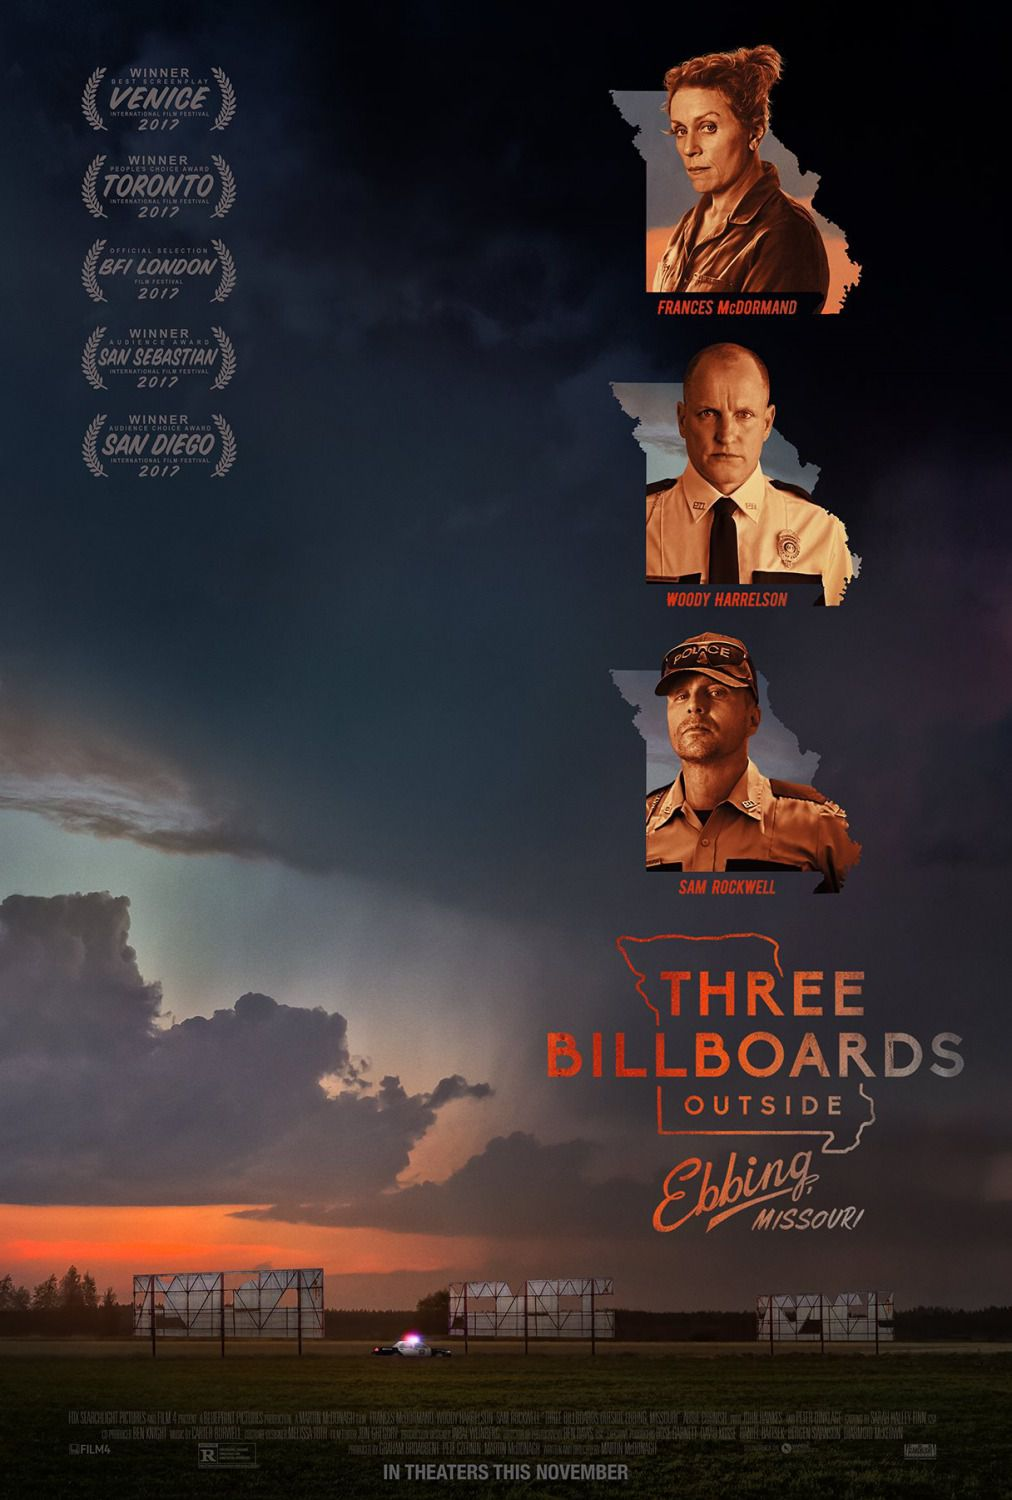 3 Billboards outside Ebbing Missouri